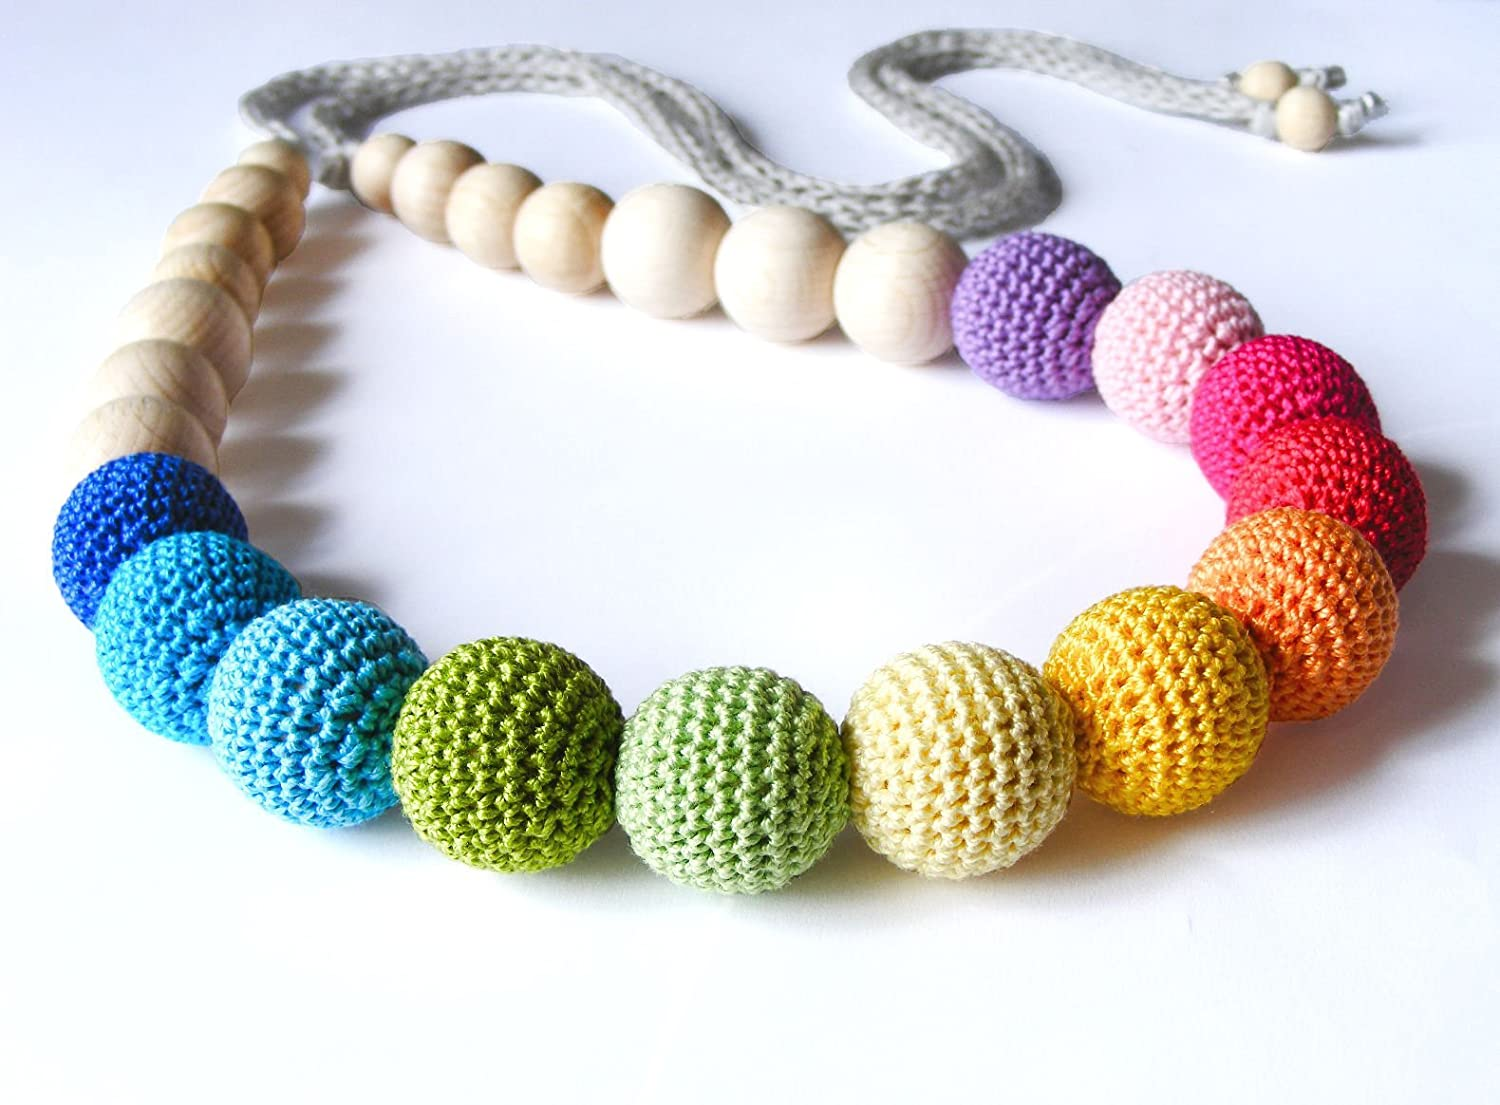 Rainbow nursing necklace, multicolor teething necklace, breastfeeding necklace, wooden crochet baby toy, natural teething ring, baby shower gift, Mother day's gift, Waldorf necklace Mother day's gift